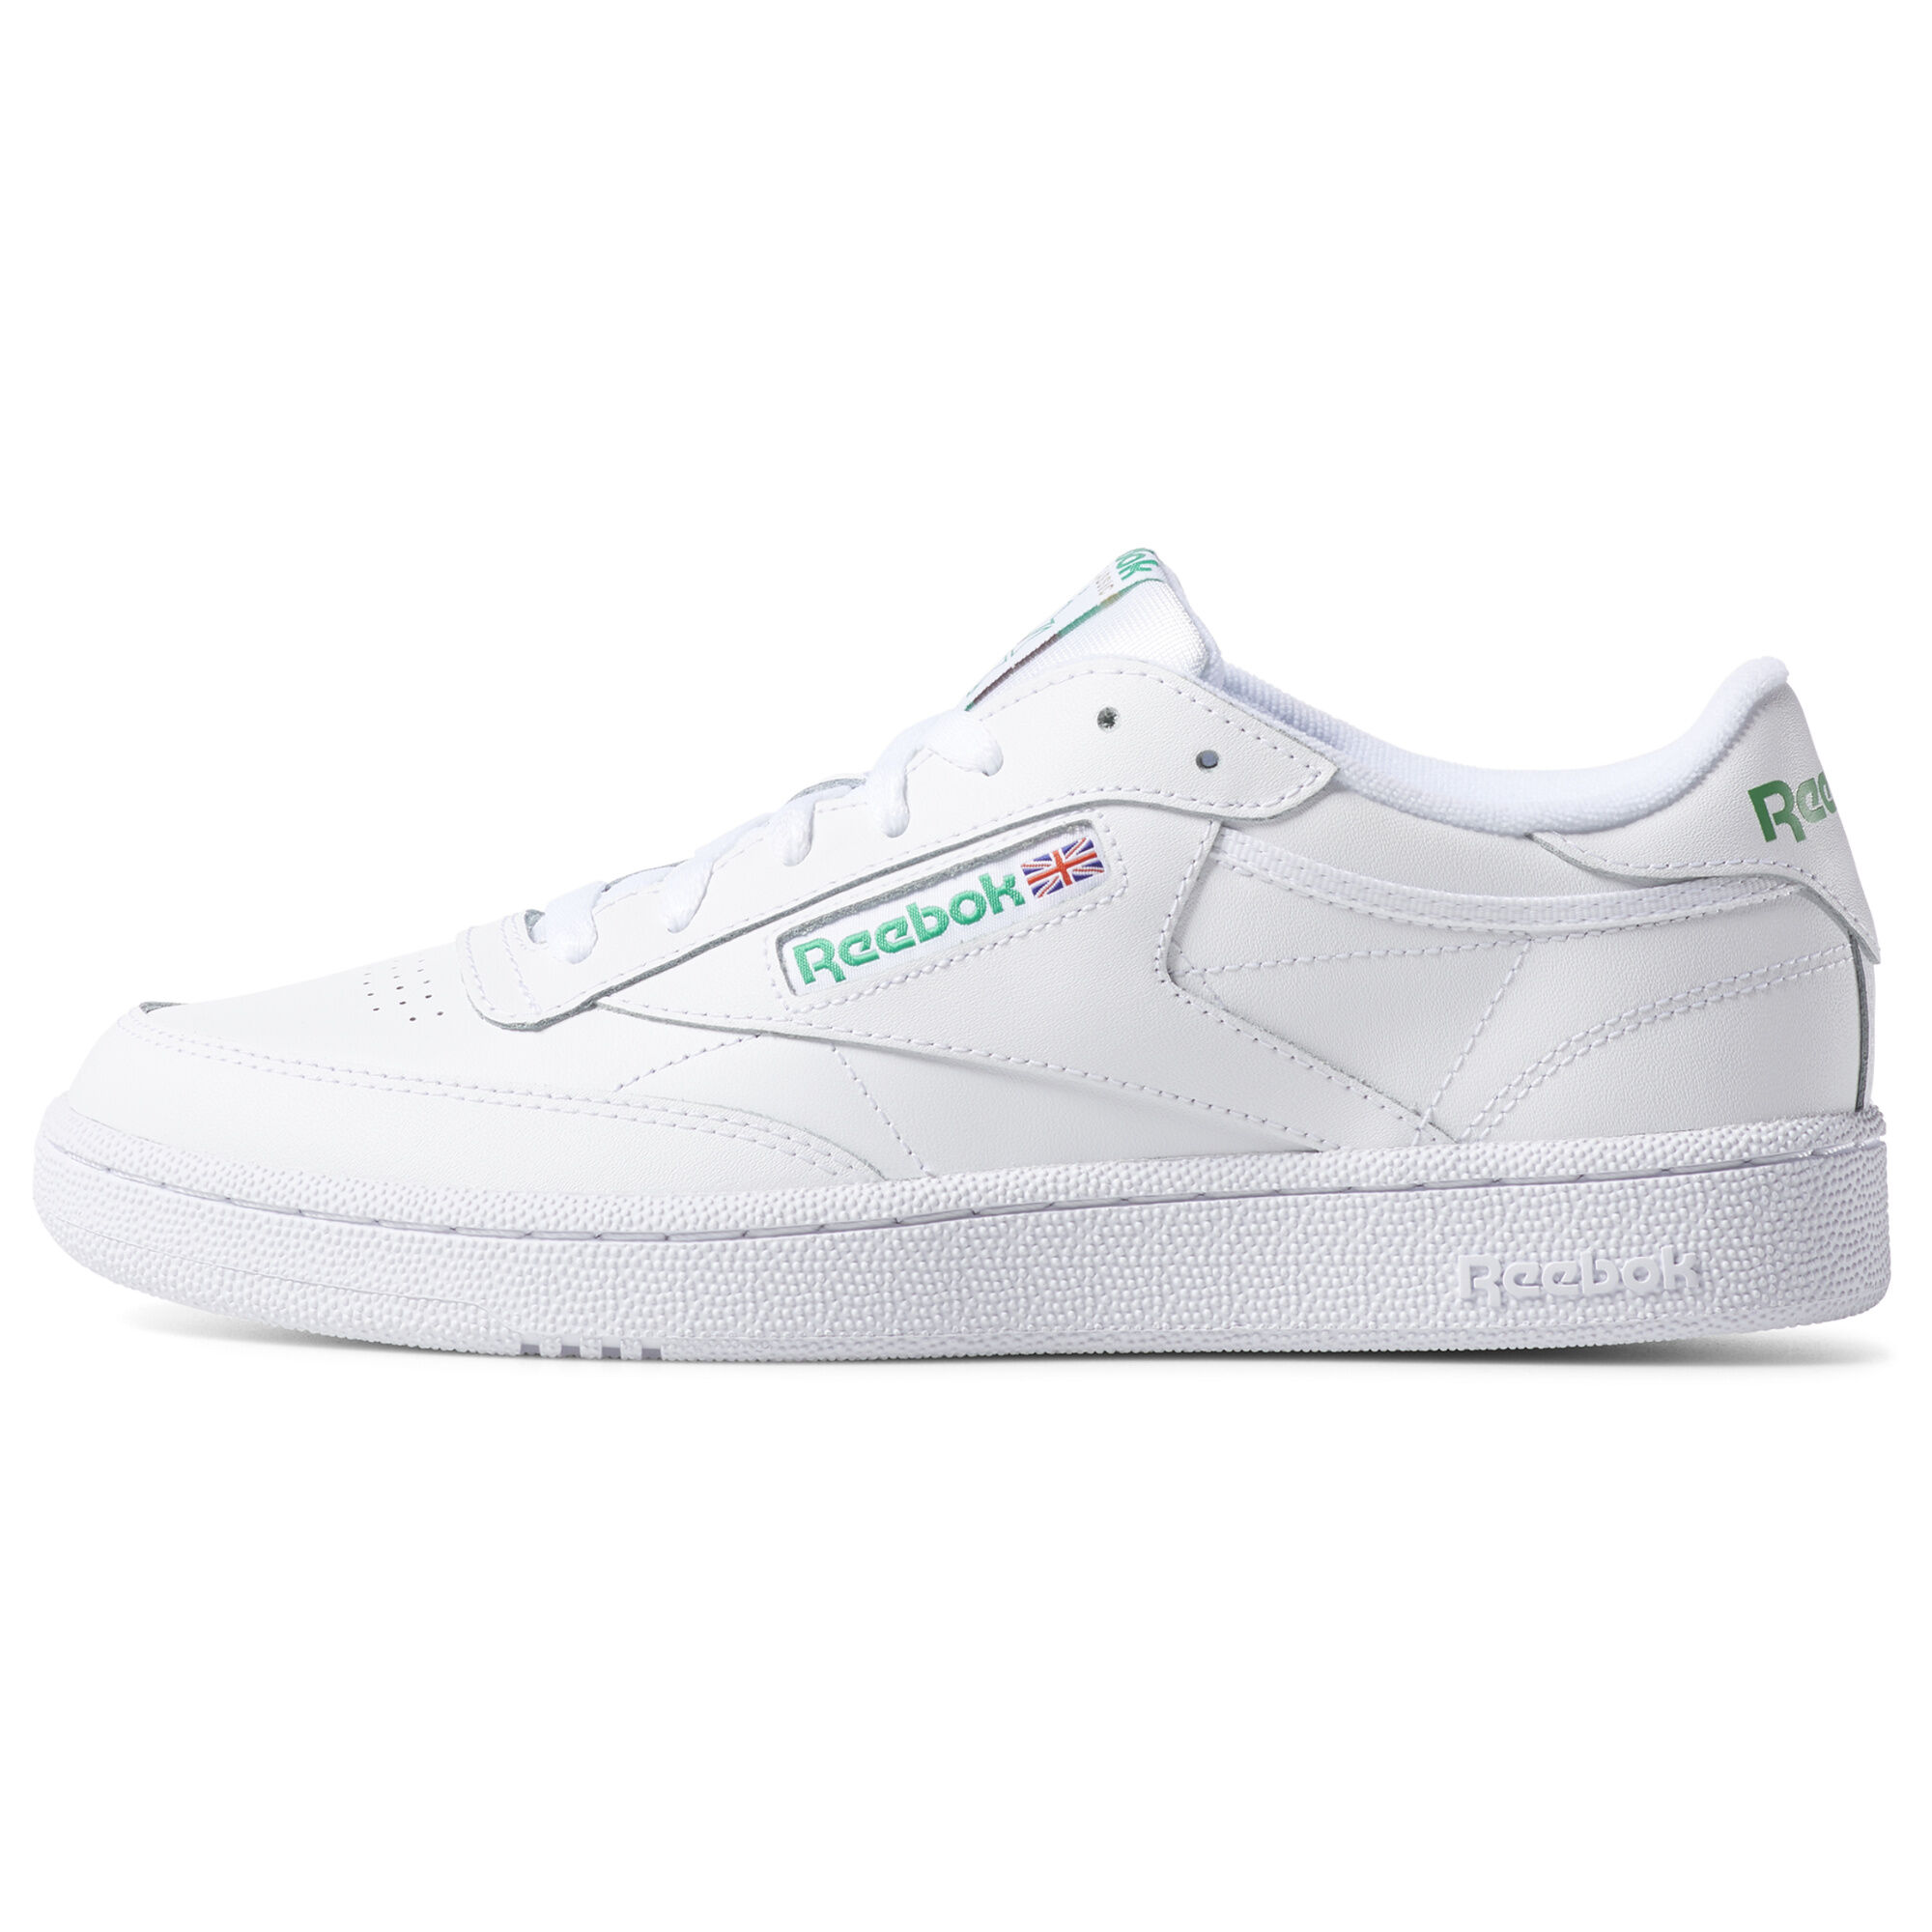 6653dbc3b2389e Reebok Club C 85 - White